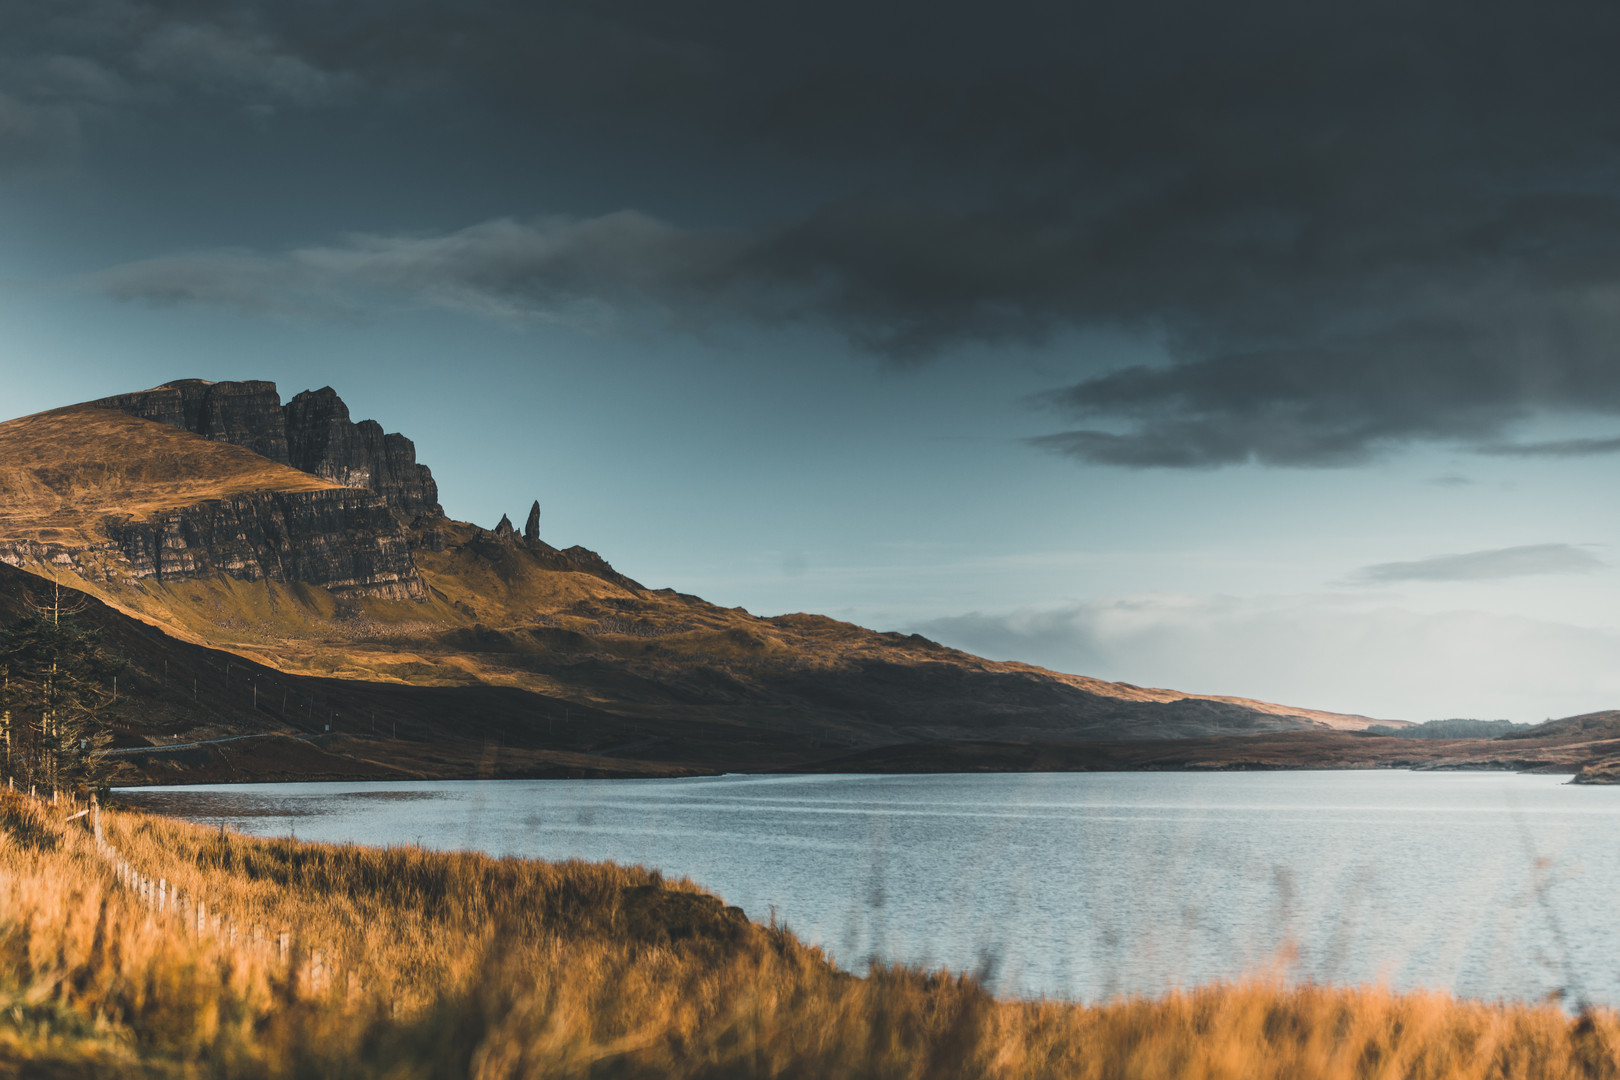 The Old Man of Storr view